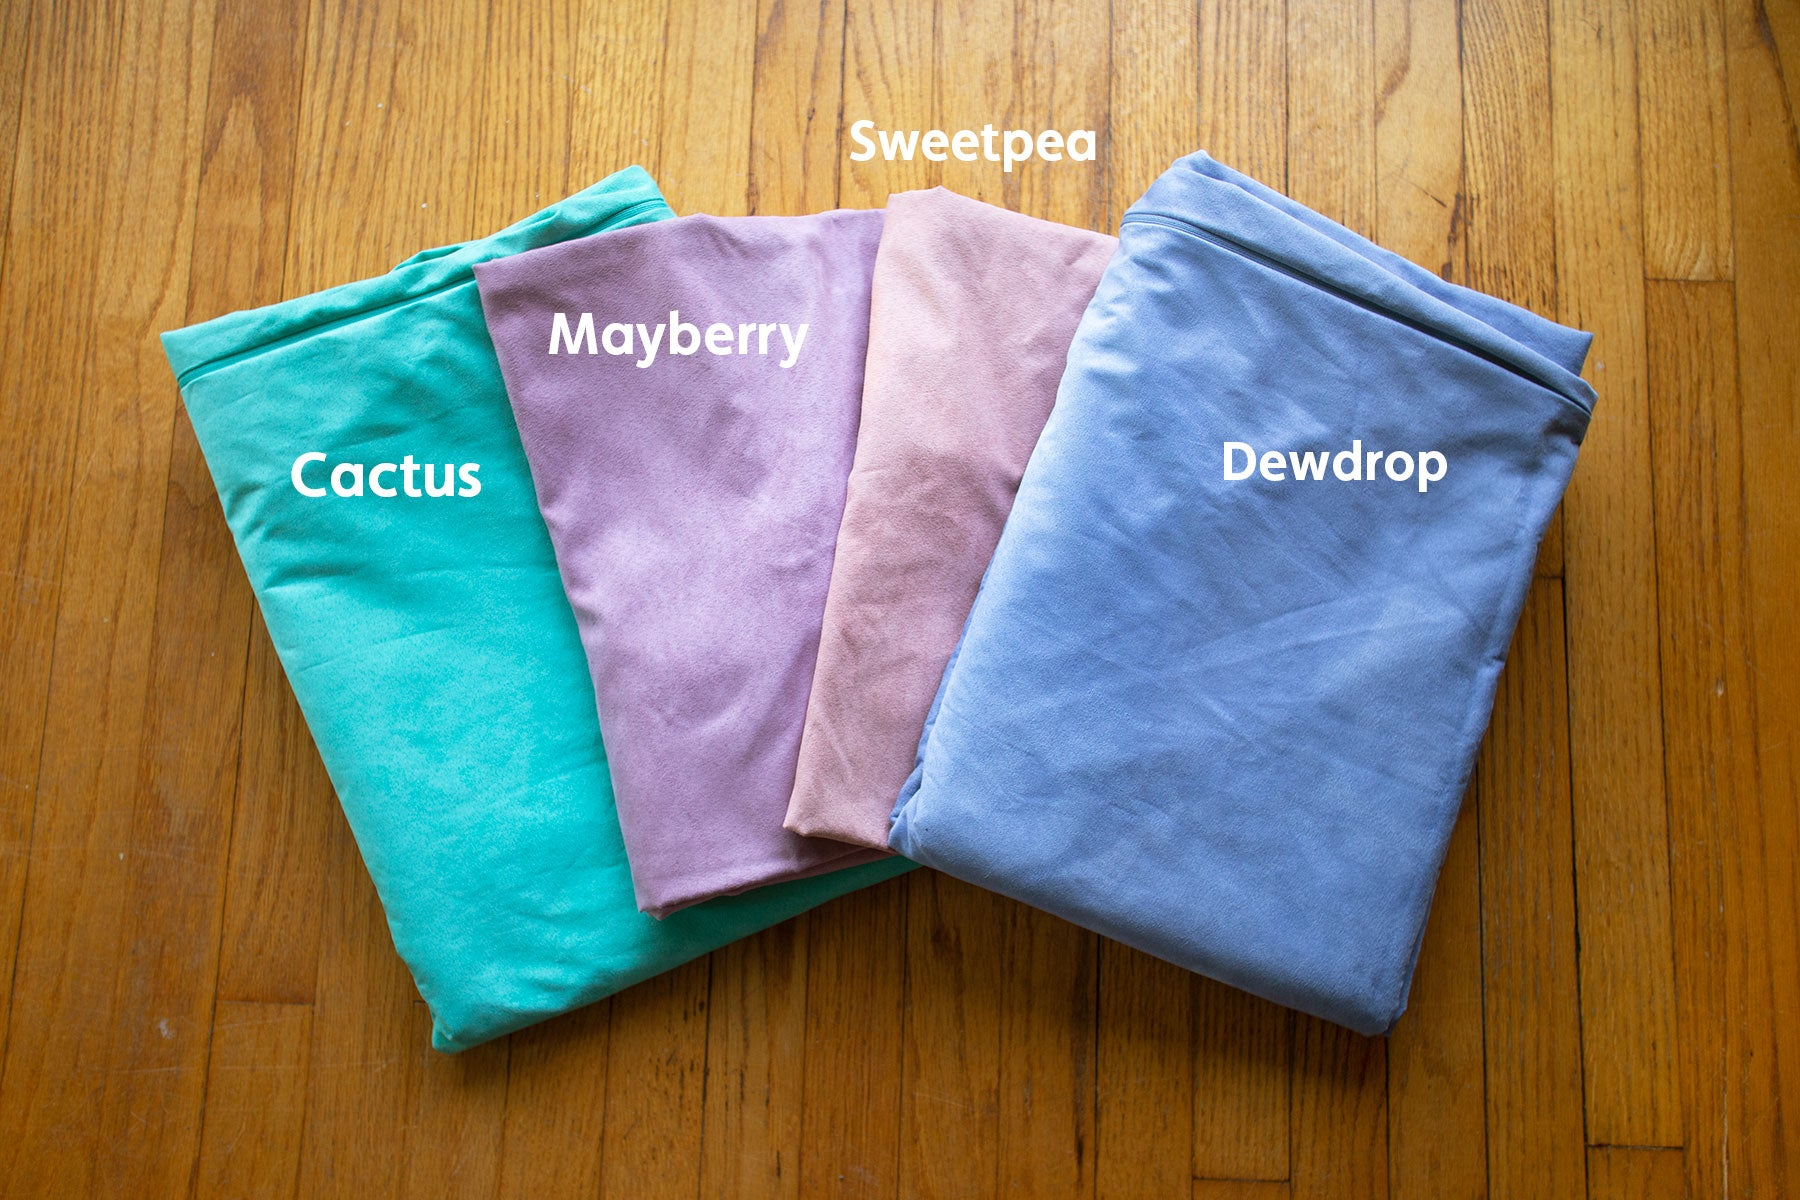 Cactus Nugget covers with Mayberry, Sweetpea, Dewdrop.